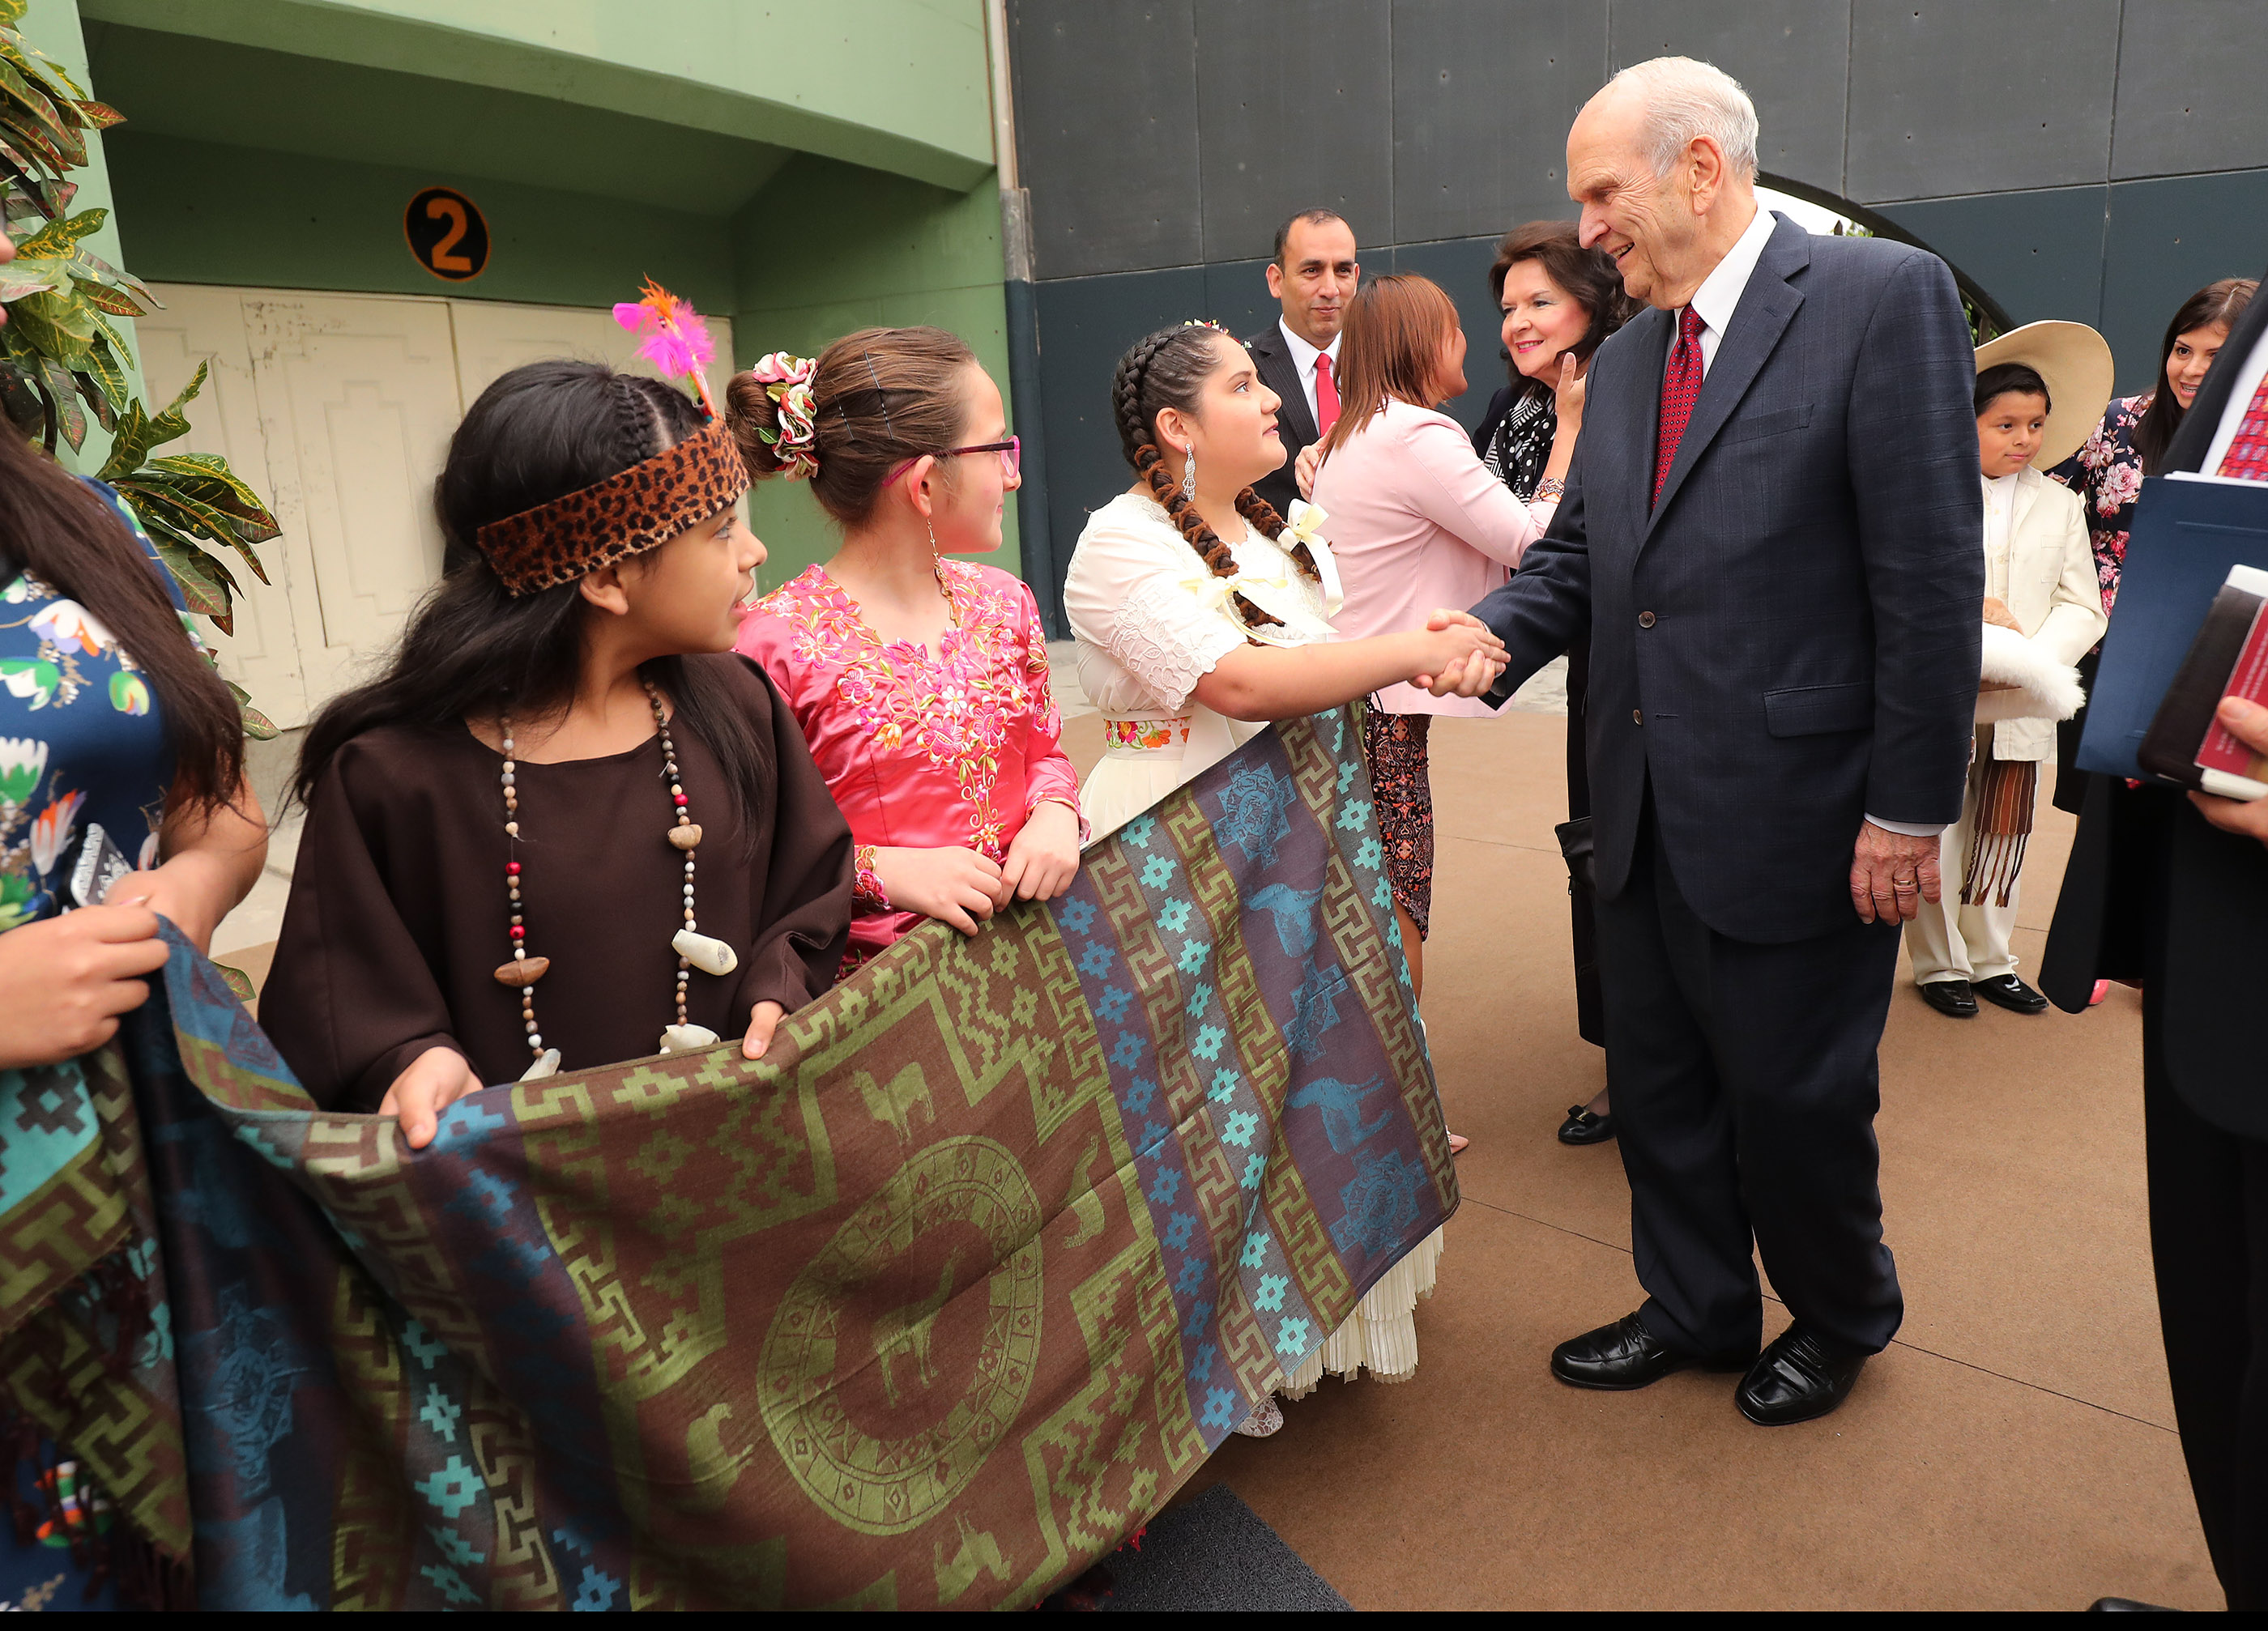 President Russell M. Nelson of The Church of Jesus Christ of Latter-day Saints is greeted prior to a devotional in Lima, Peru, on Oct. 20, 2018.